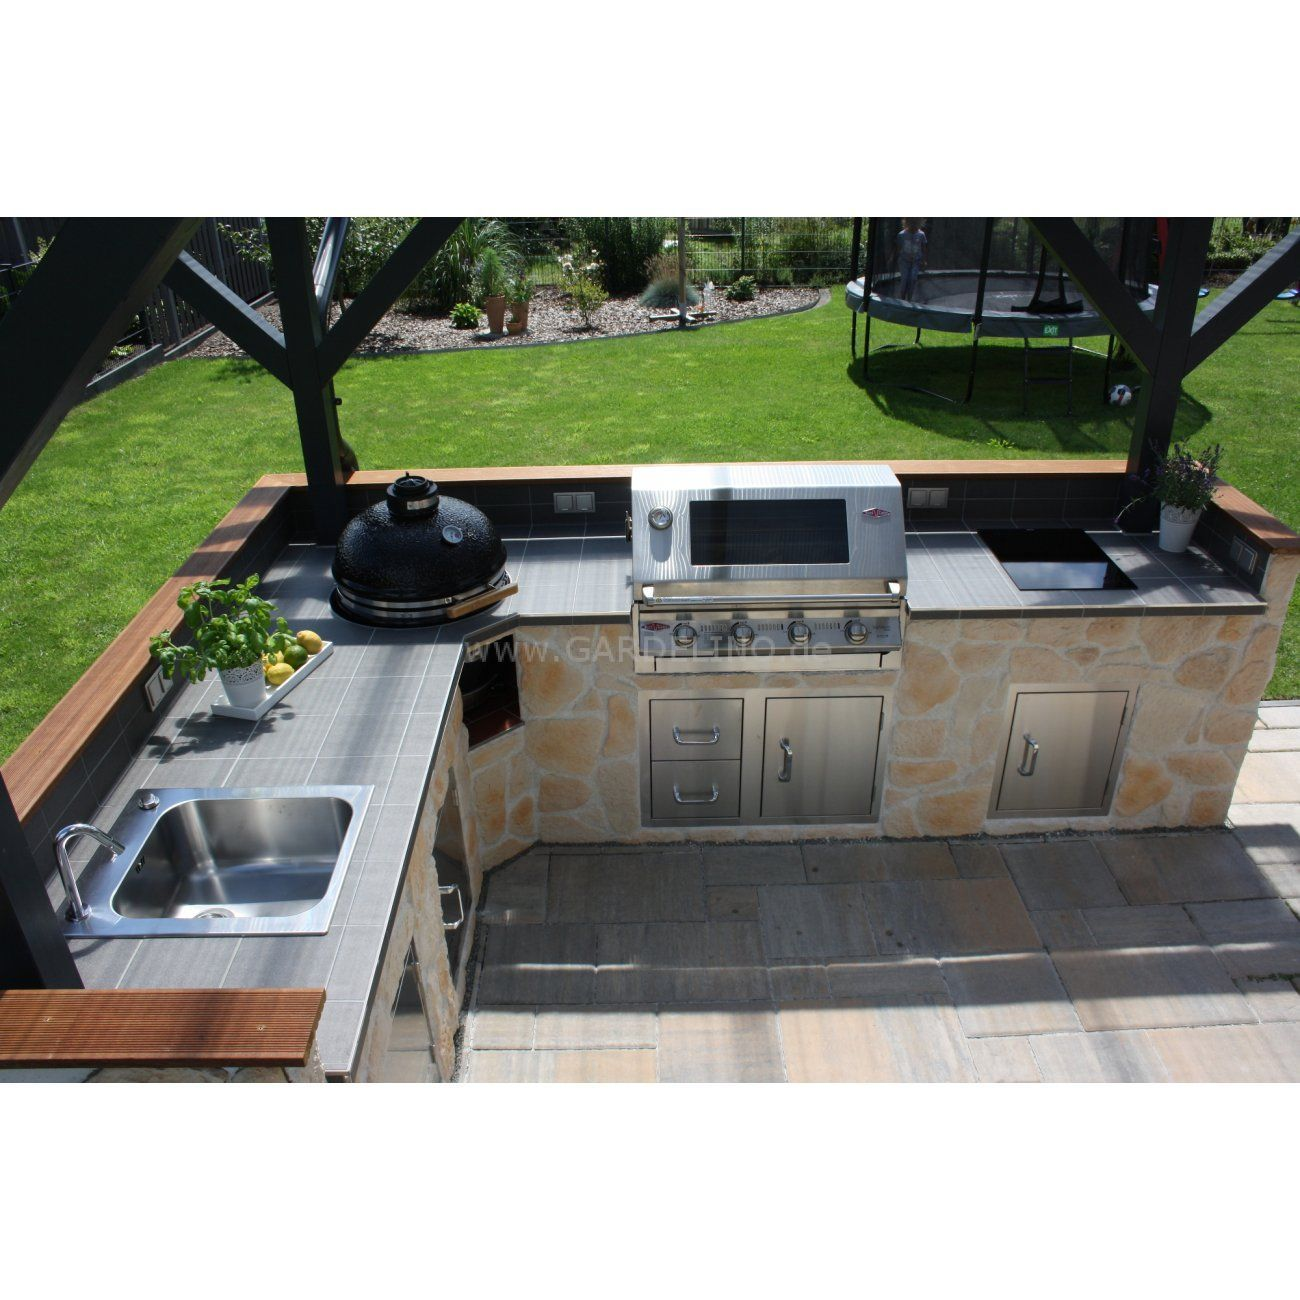 10 Outdoor Kitchen Ideas And Design On A Budget To Experience A Fun Cooking Outdoor Kitchen Grill Outdoor Bbq Kitchen Modern Outdoor Kitchen